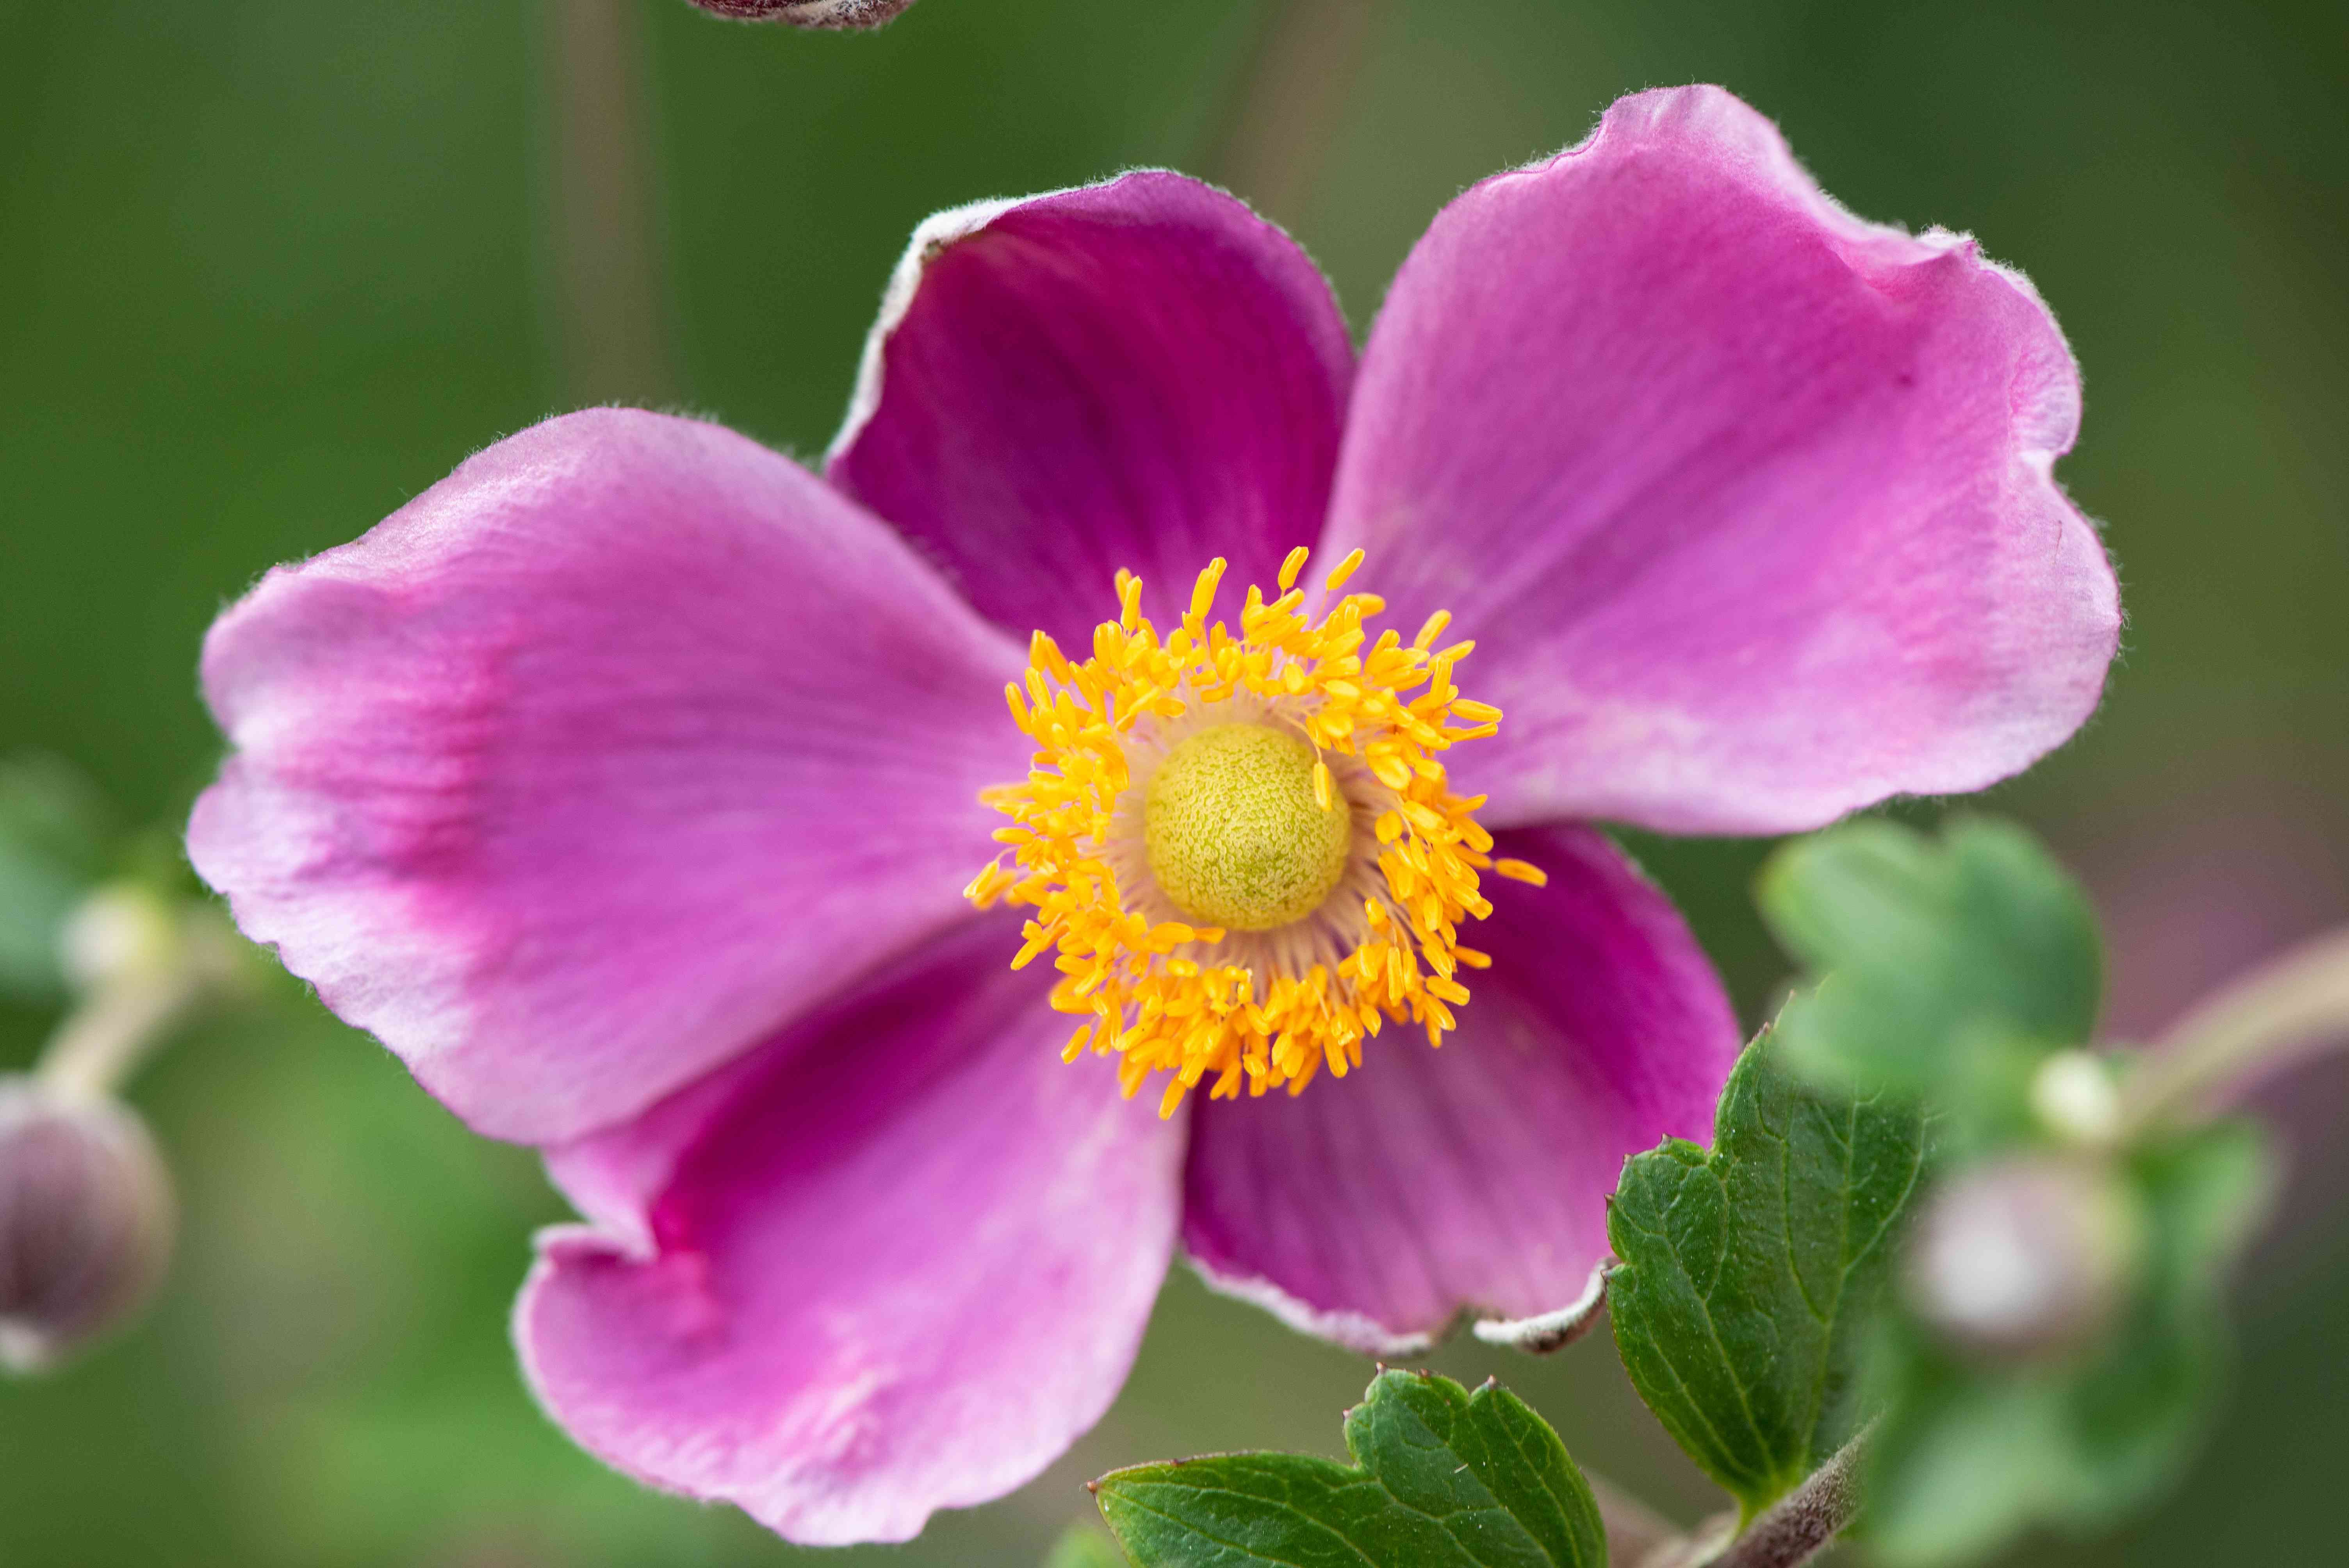 Rue anemone flower with deep pink petals and yellow center closeup